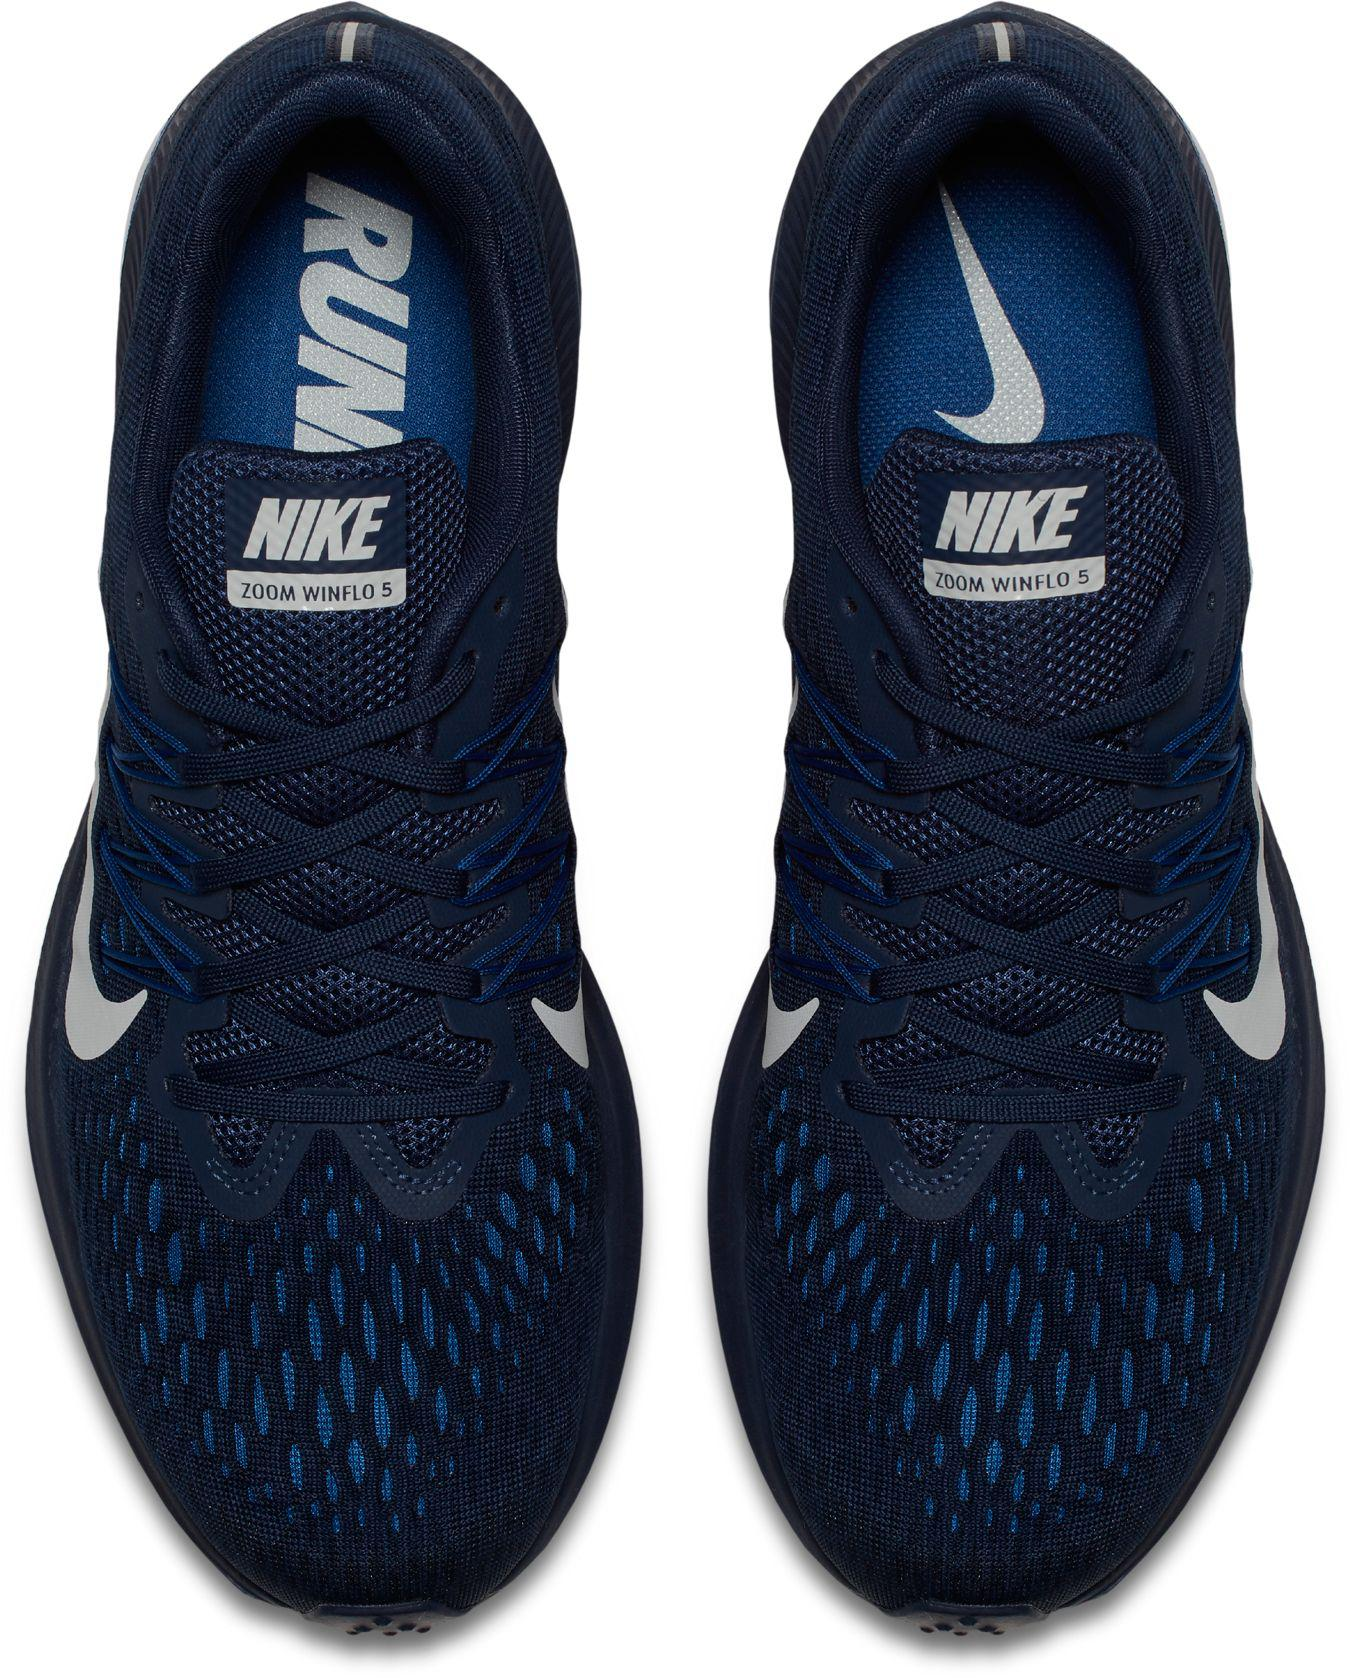 super popular c6a58 47380 Nike - Blue Air Zoom Winflo 5 Running Shoes for Men - Lyst